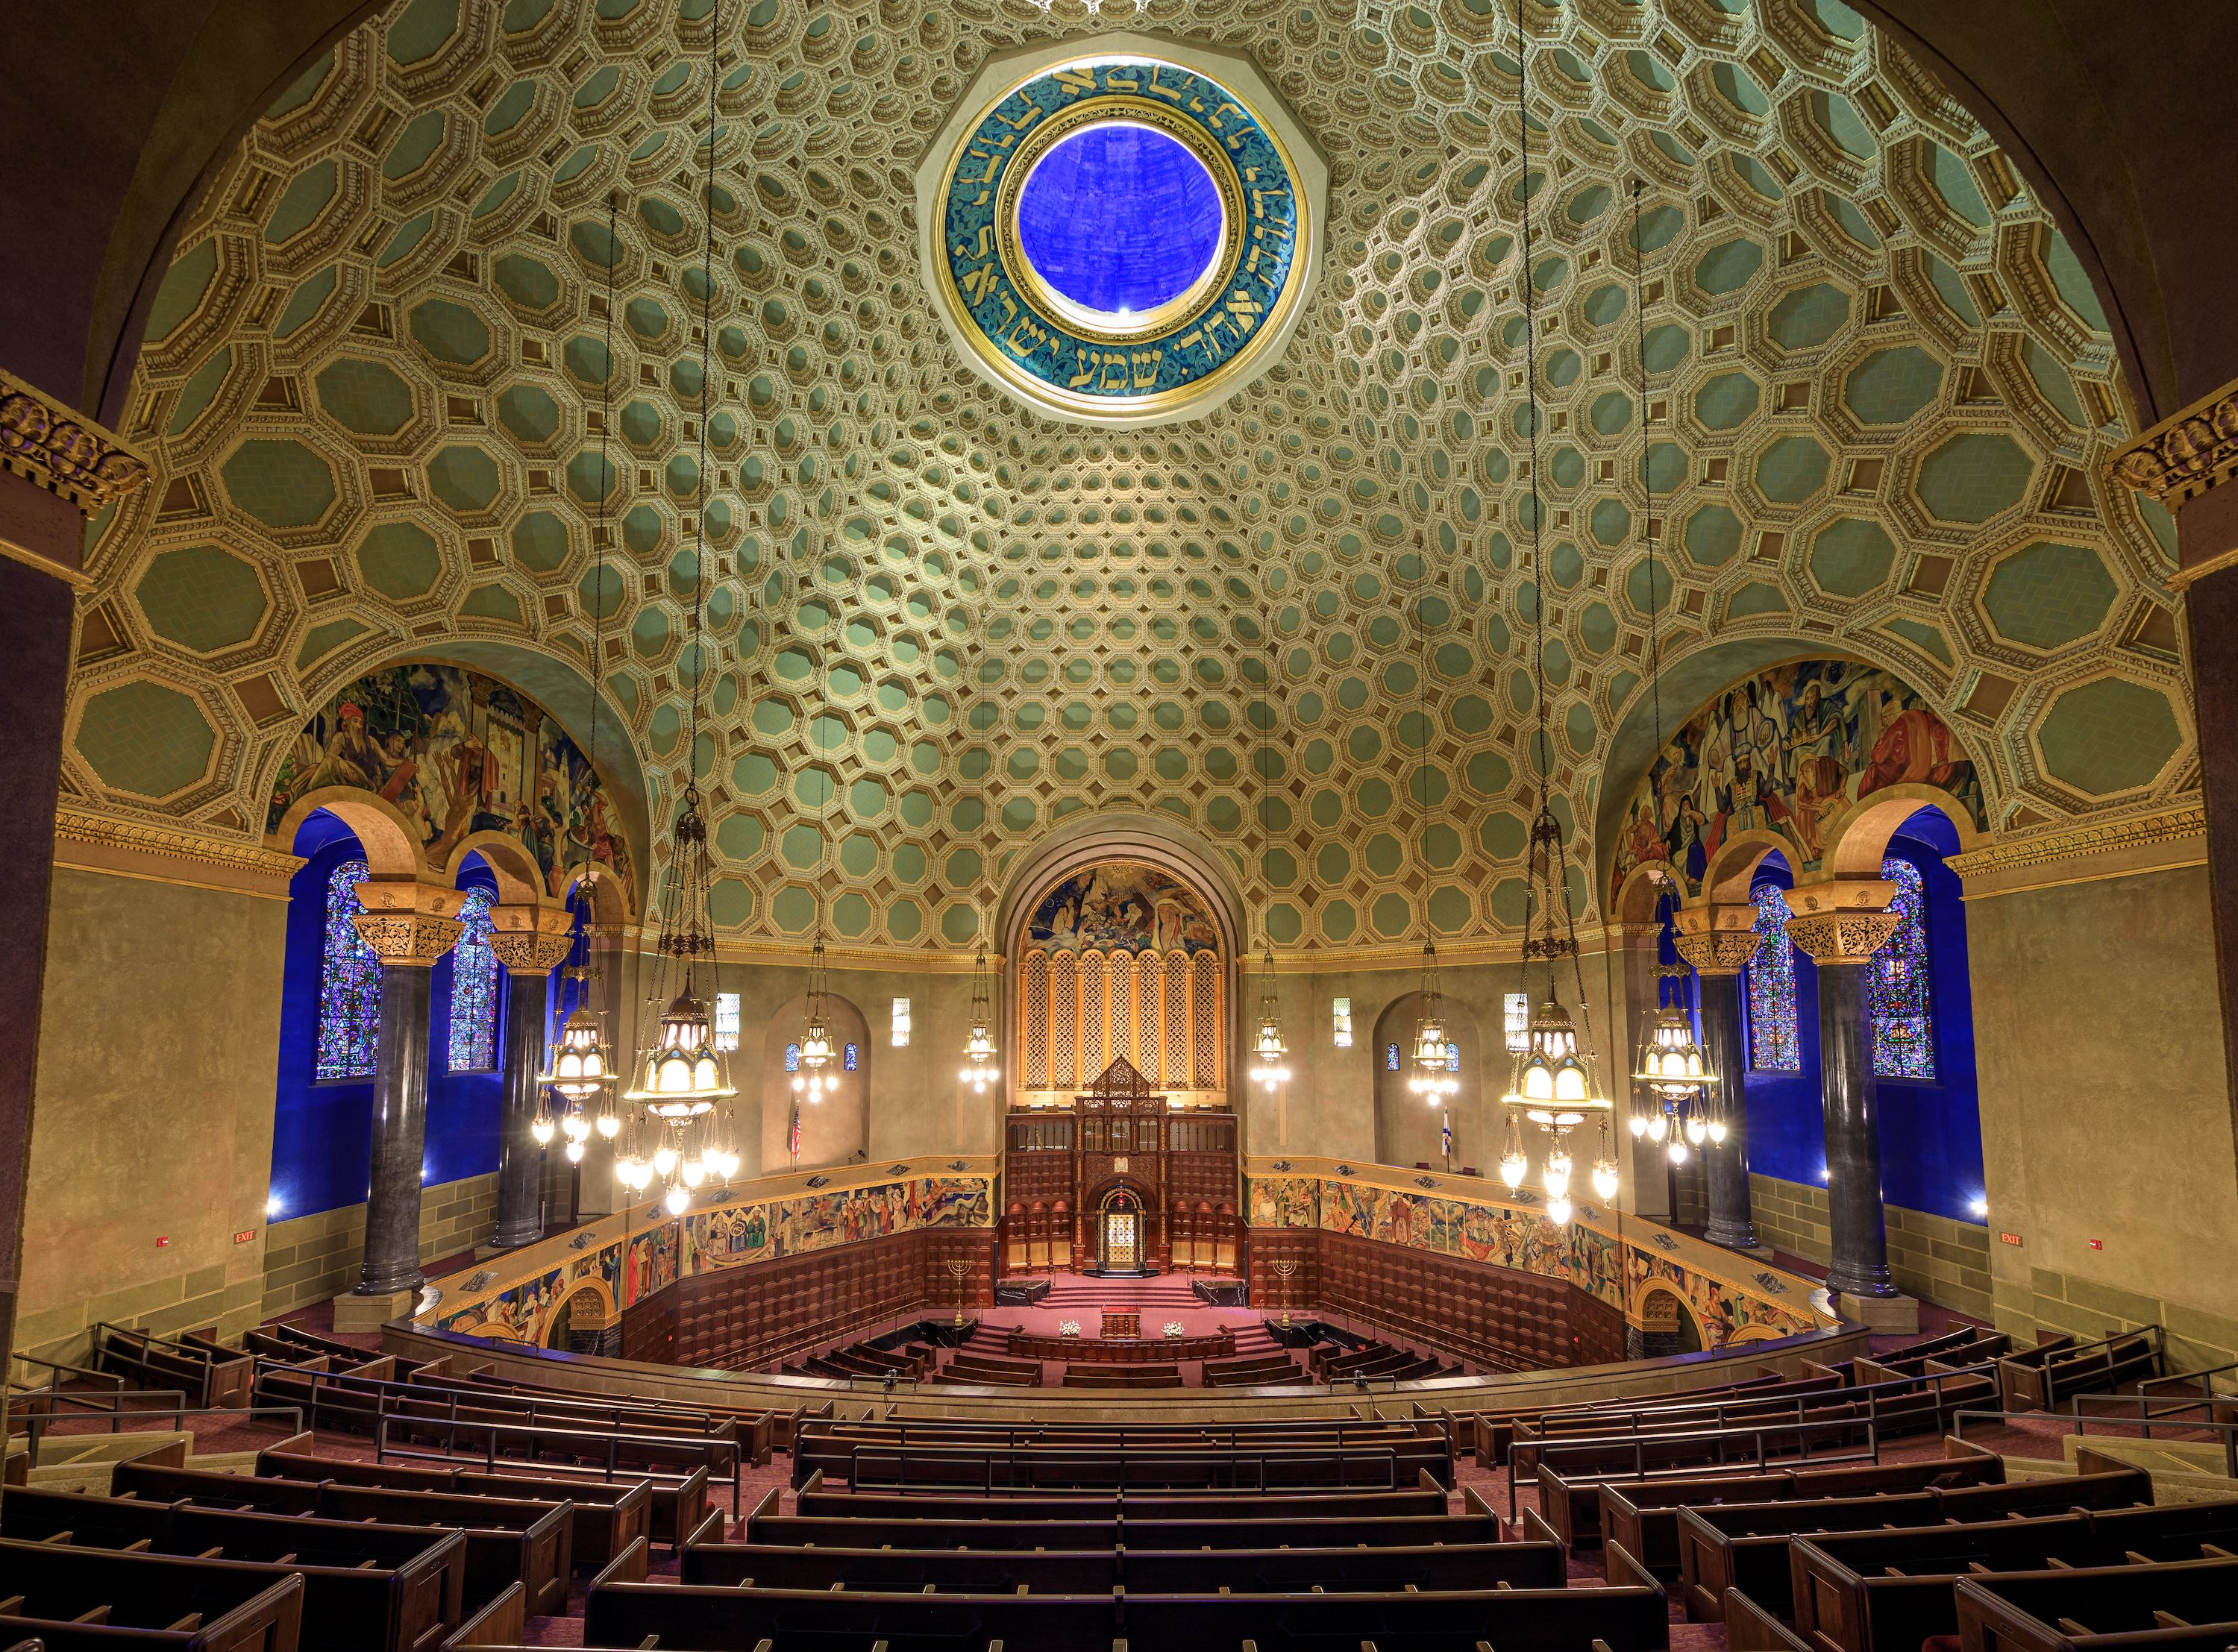 Boulevard Temple interior dome: Wilshire Boulevard Temple's restored and stabilized Byzantine Revival-style coffered dome ceiling, the centerpiece of a $150 million rehabilitation and a congregation's recommitment to its historic urban neighborhood.